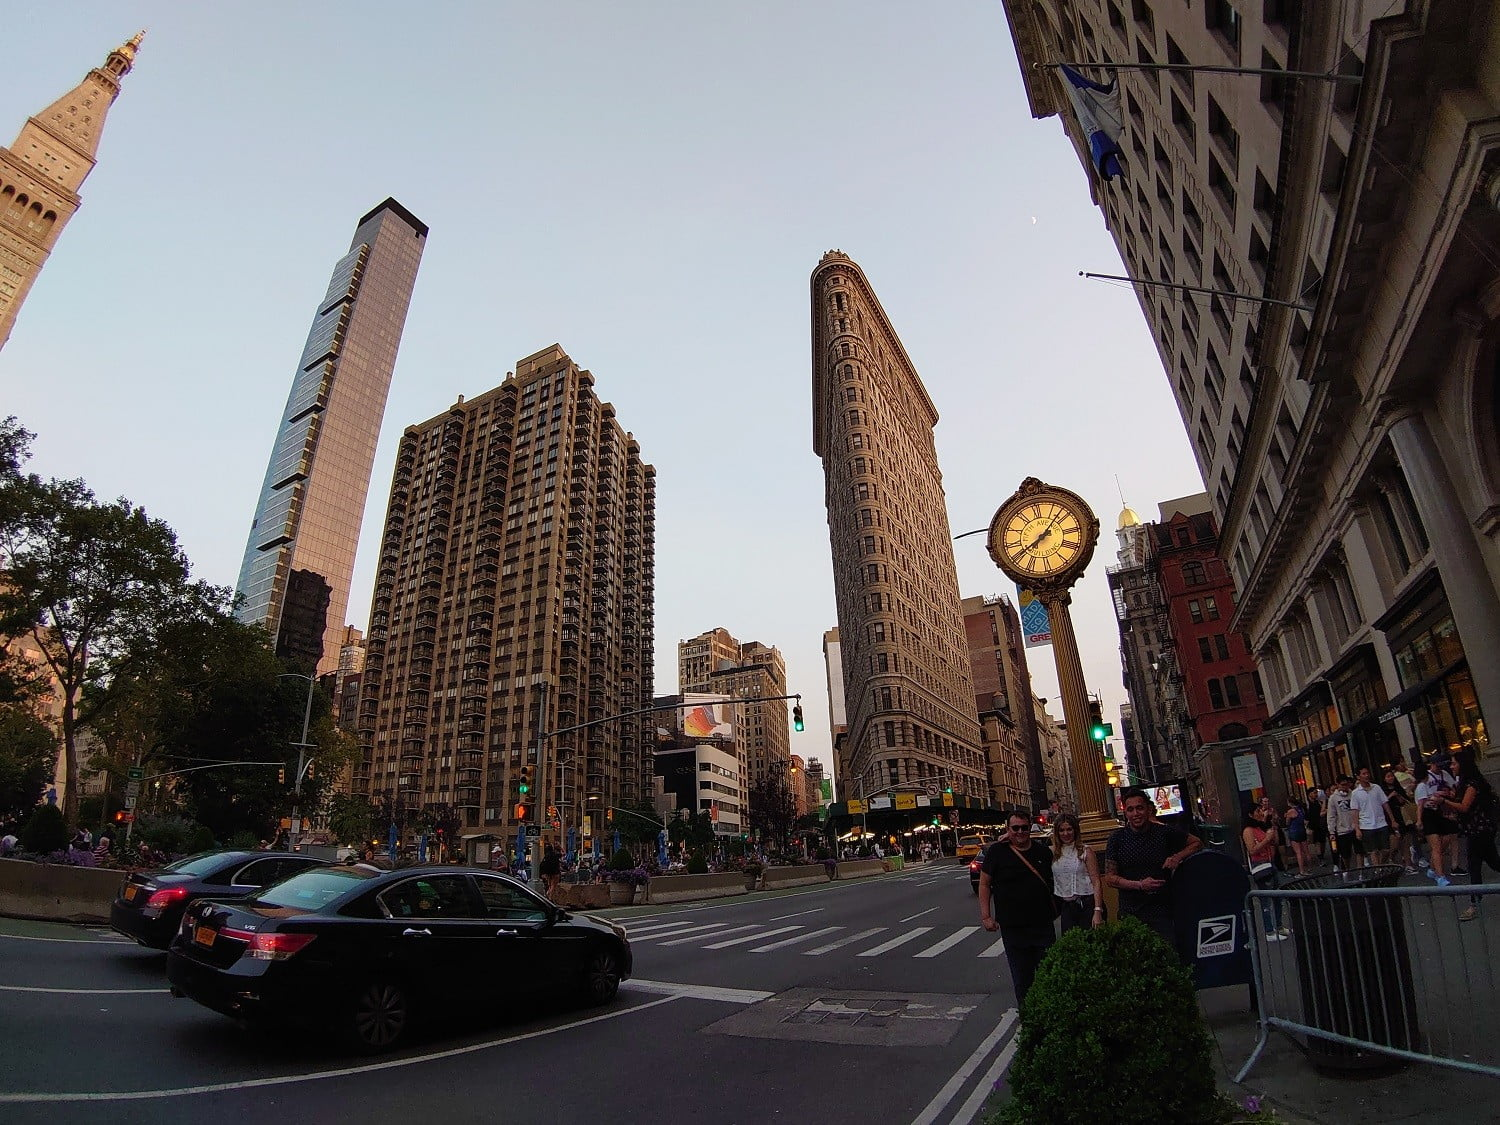 sony xperia 1 review wide angle